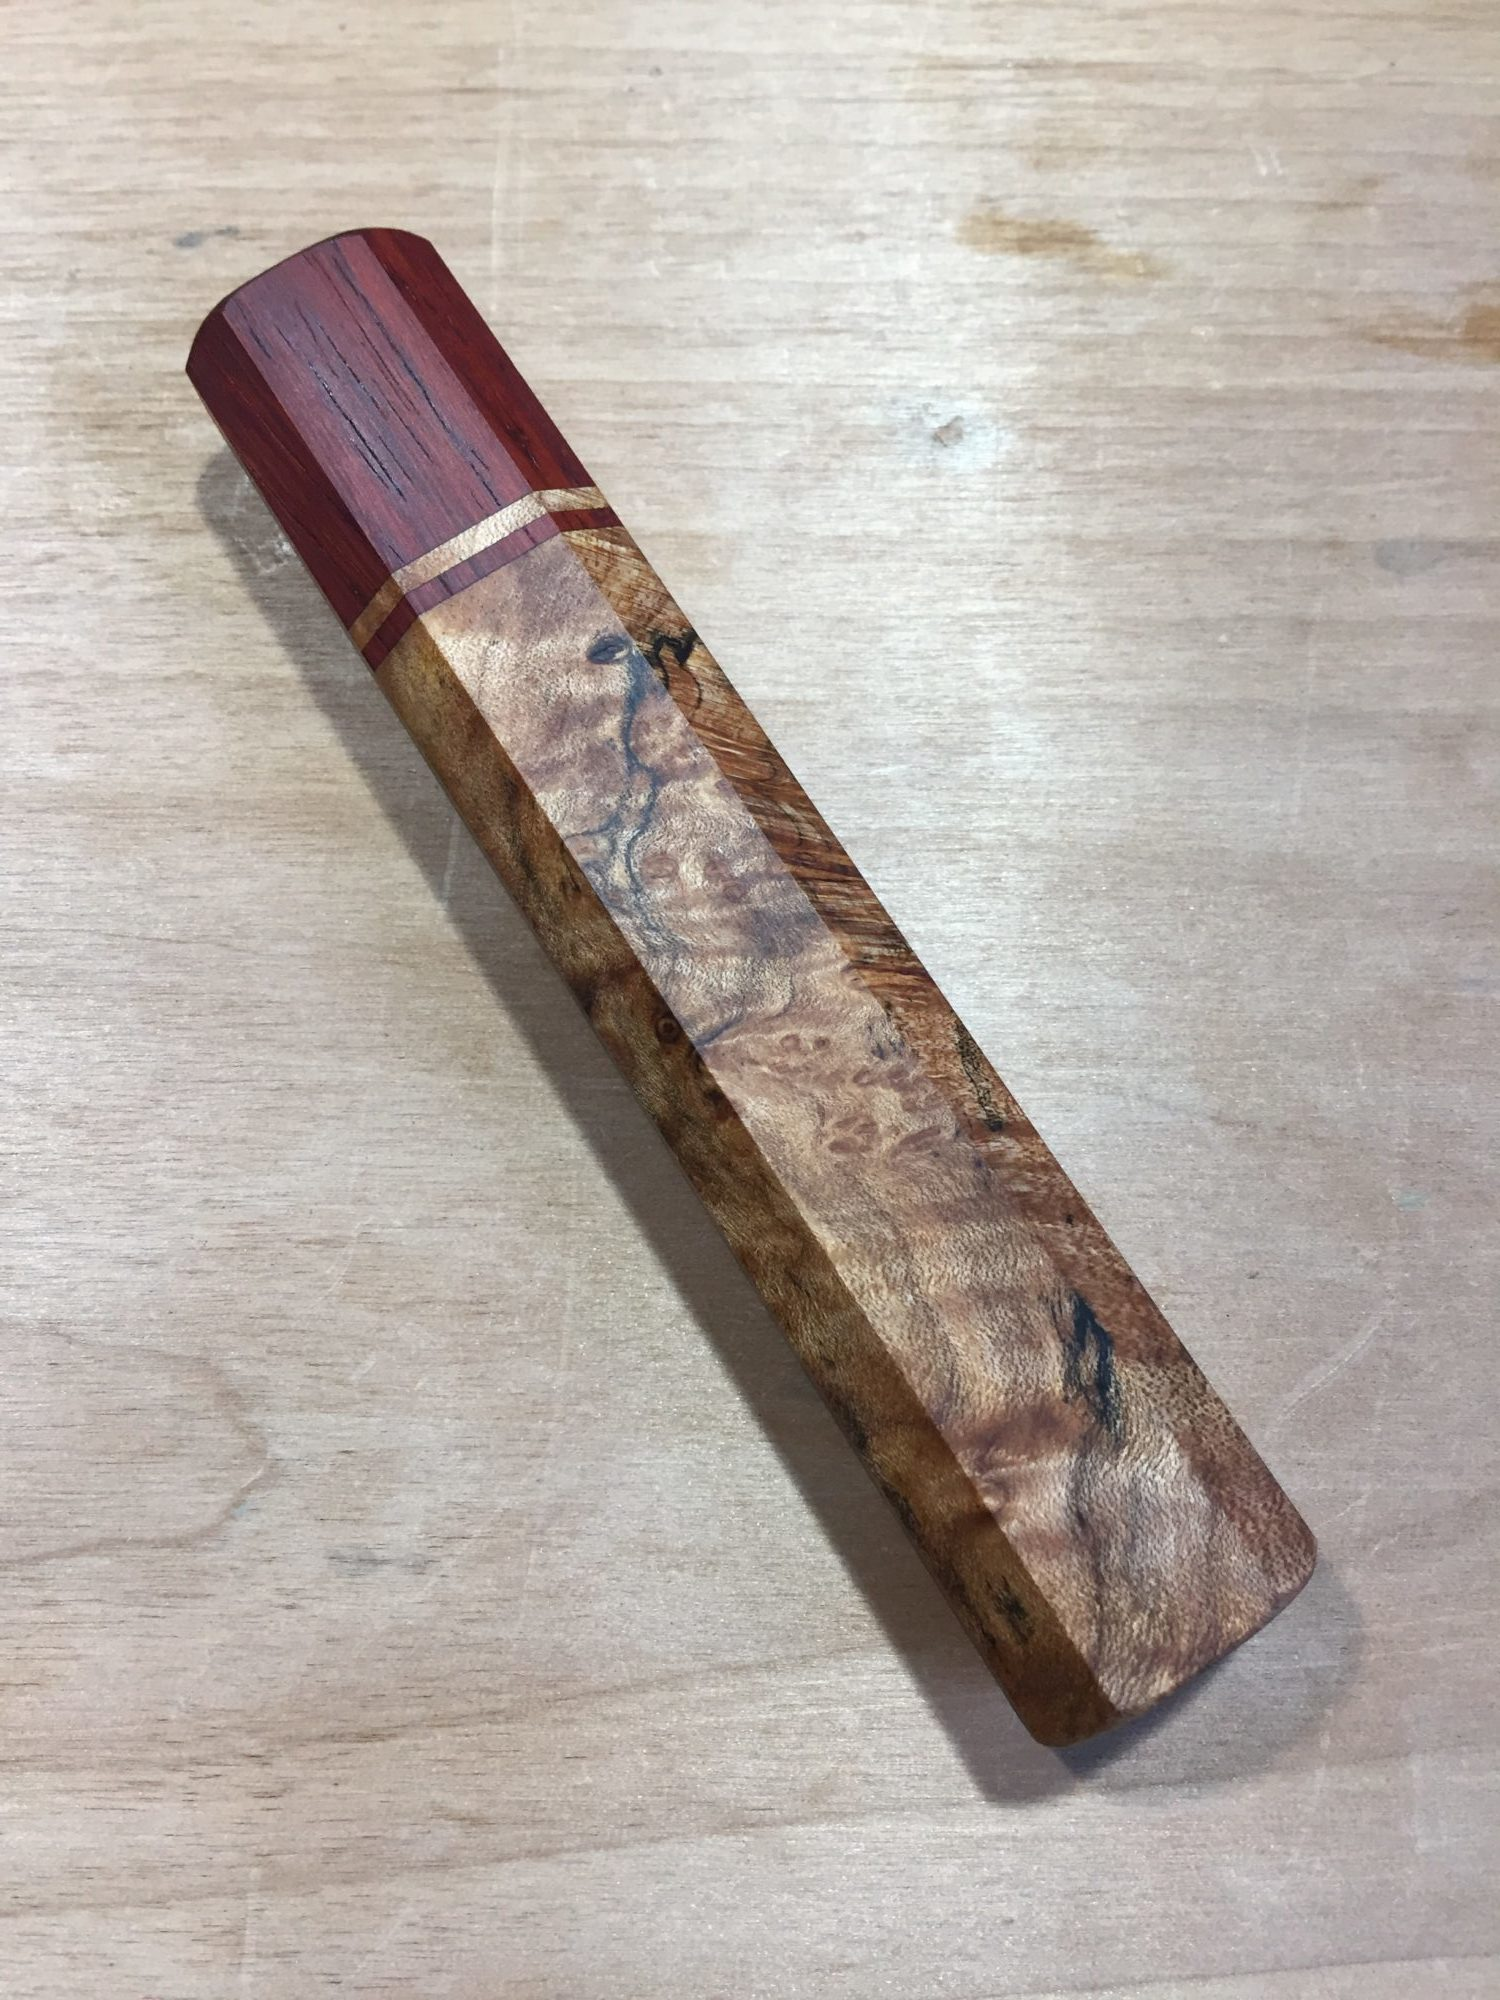 wa-handle finished with Tung oil